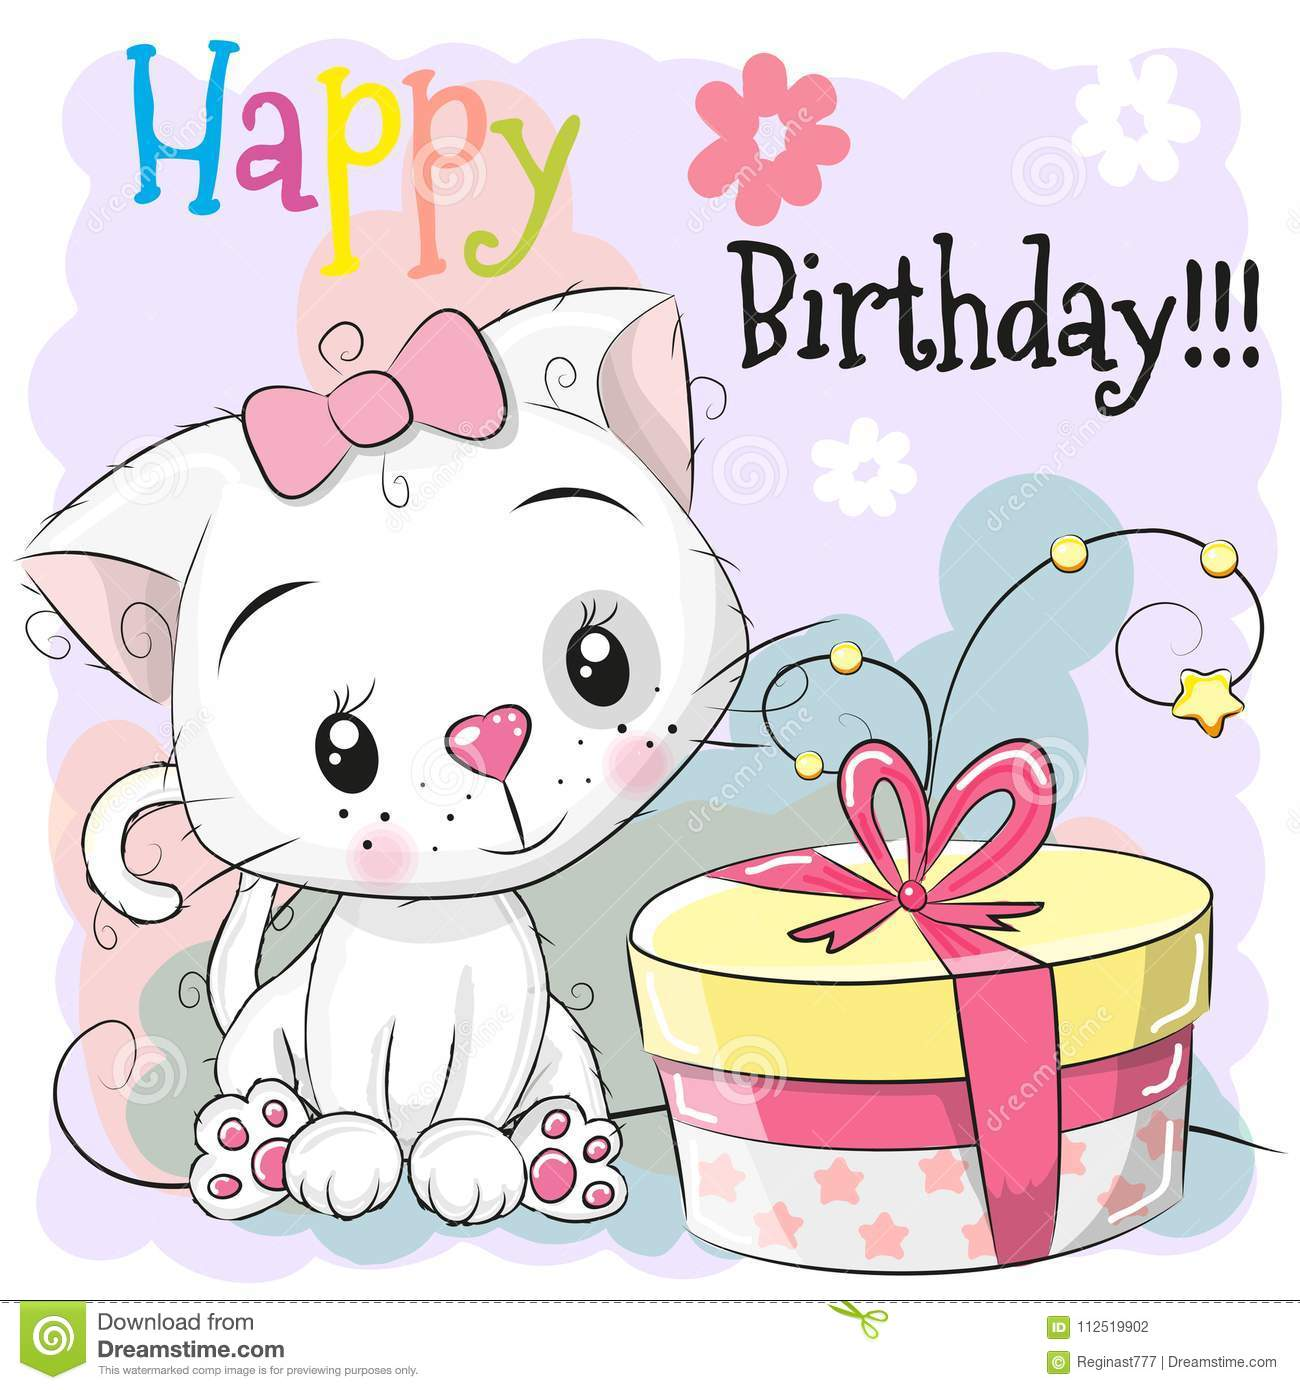 Greeting Birthday card cute Kitten with gift